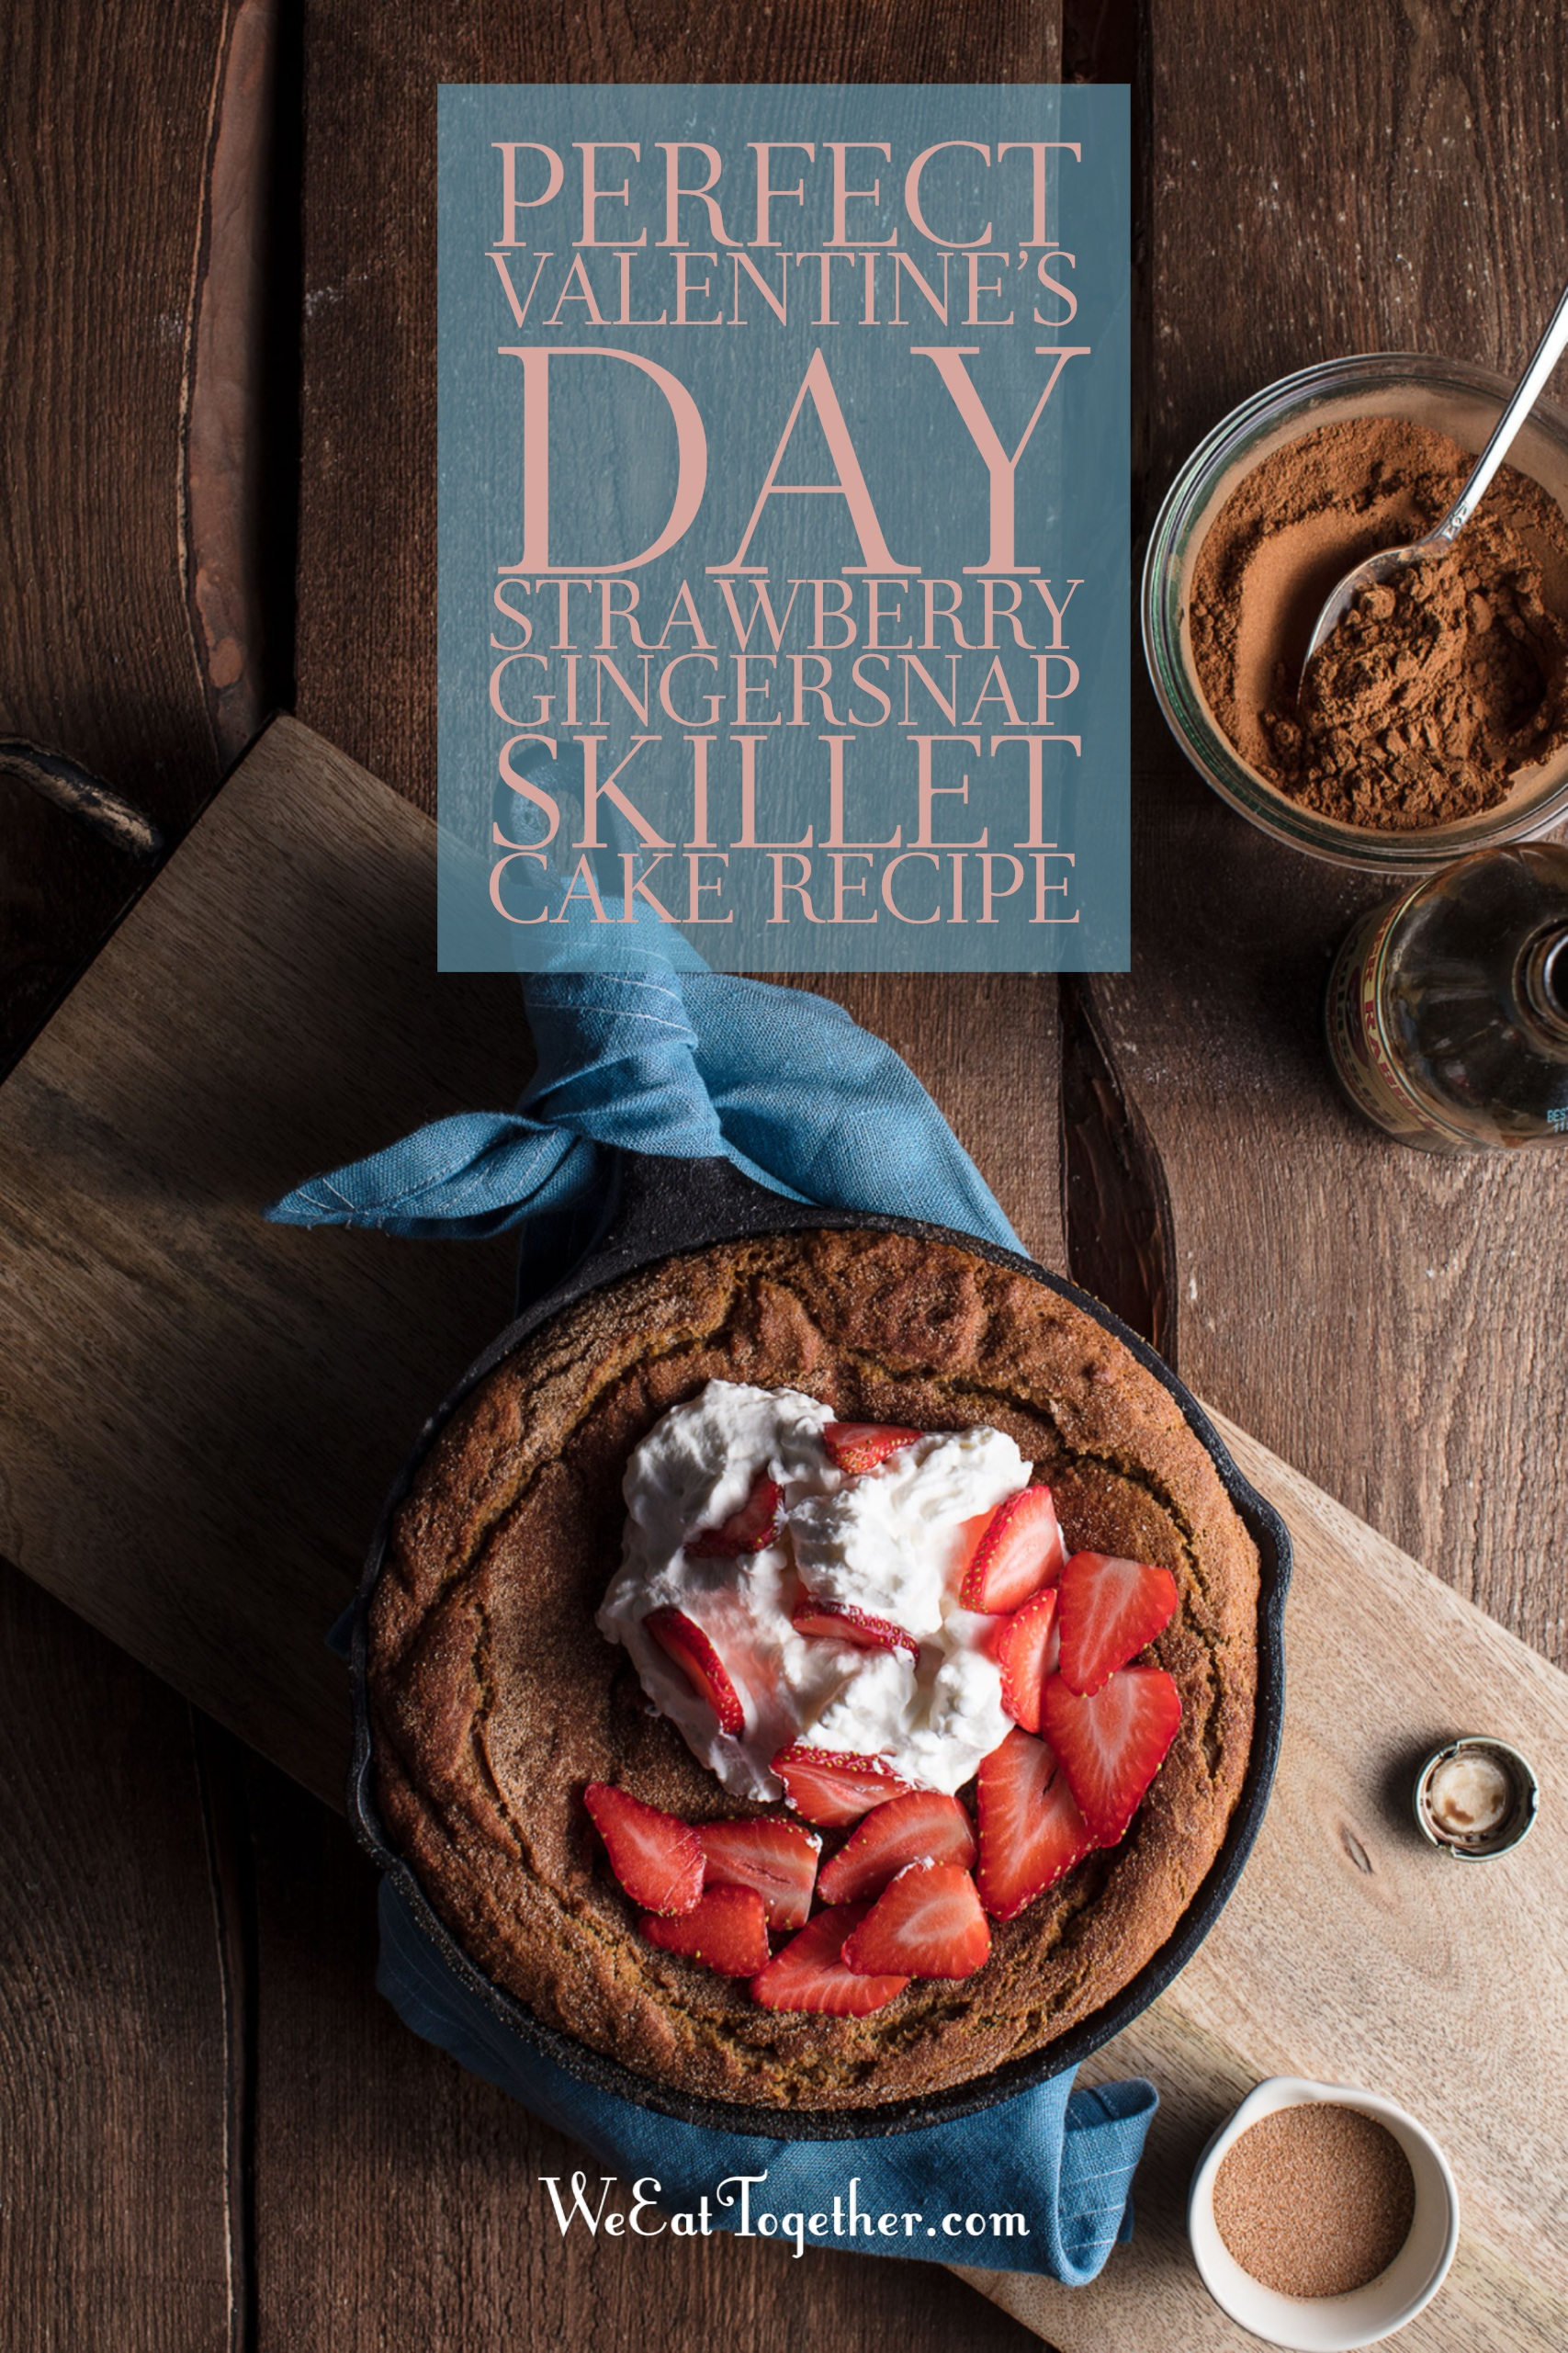 Perfect Valentine's Day Strawberry Gingersnap Skillet Cake Recipe